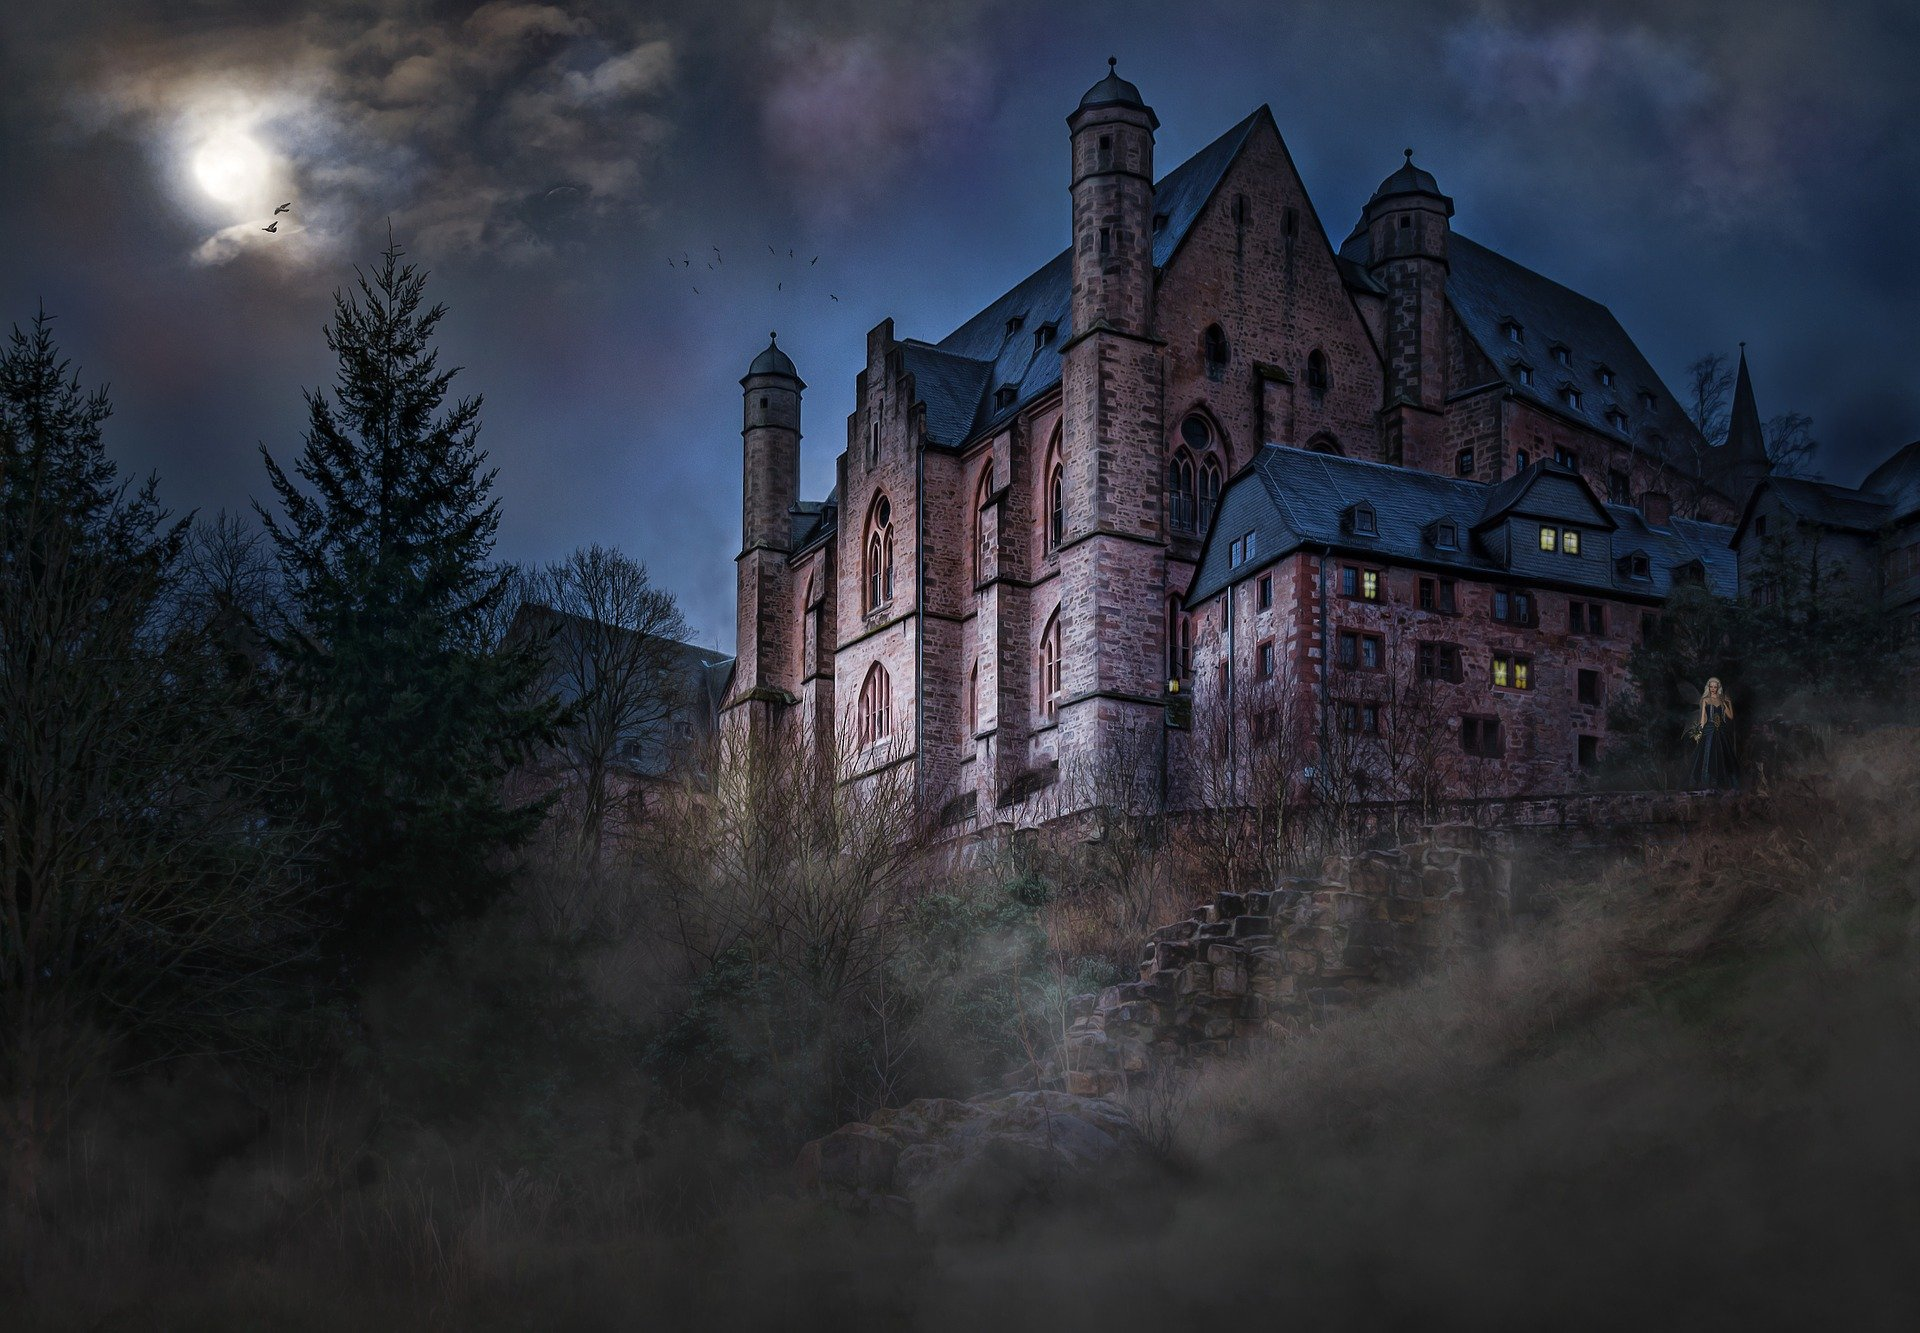 An eerie castle with a woman standing outside | Photo: Pixabay/Reinhold Silbermann